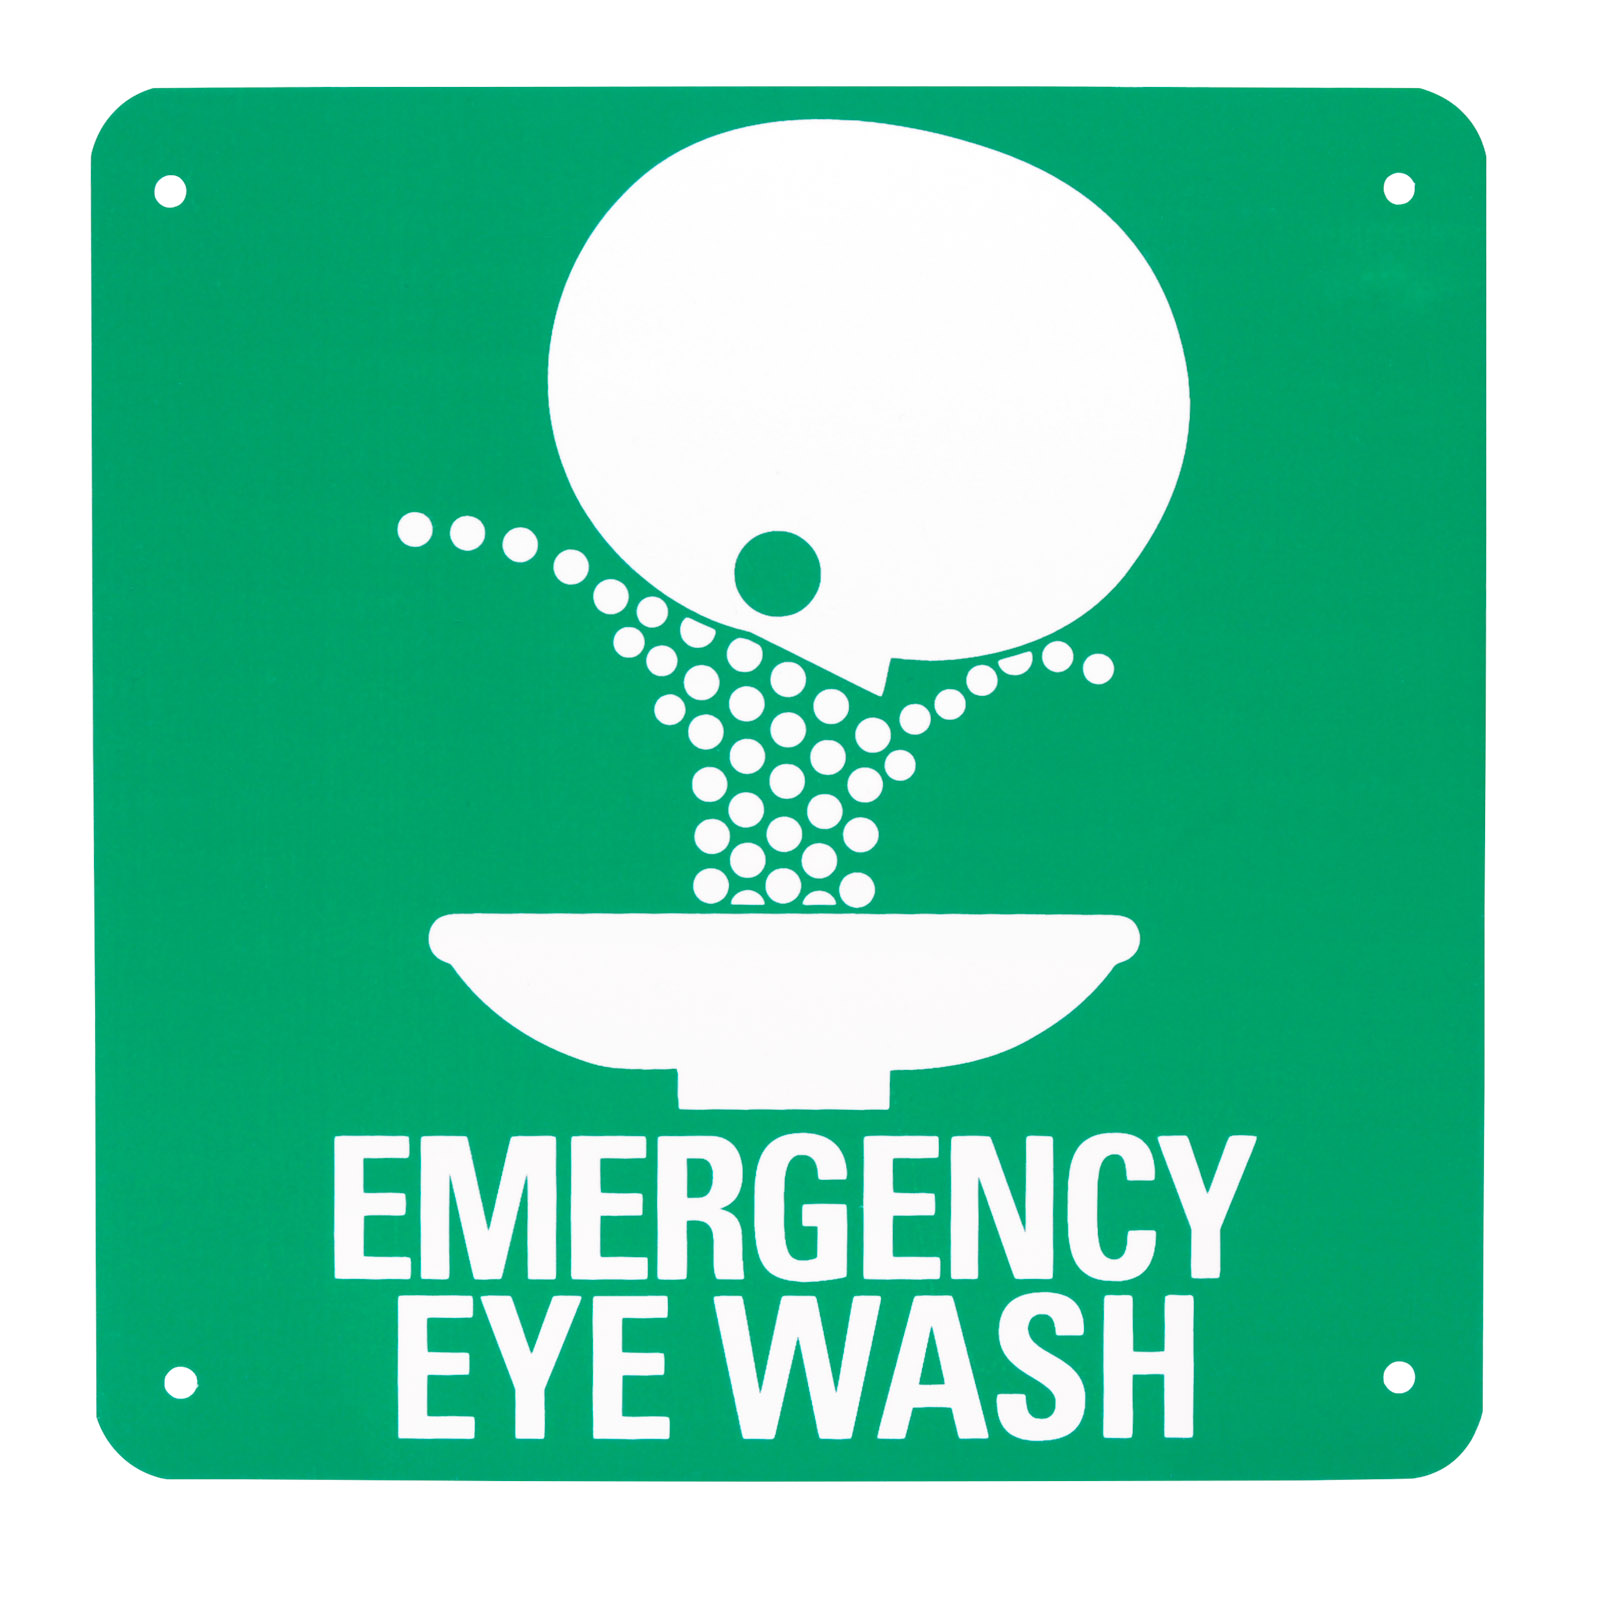 Eye Wash Symbol Safety Sign Mfasco Health Safety